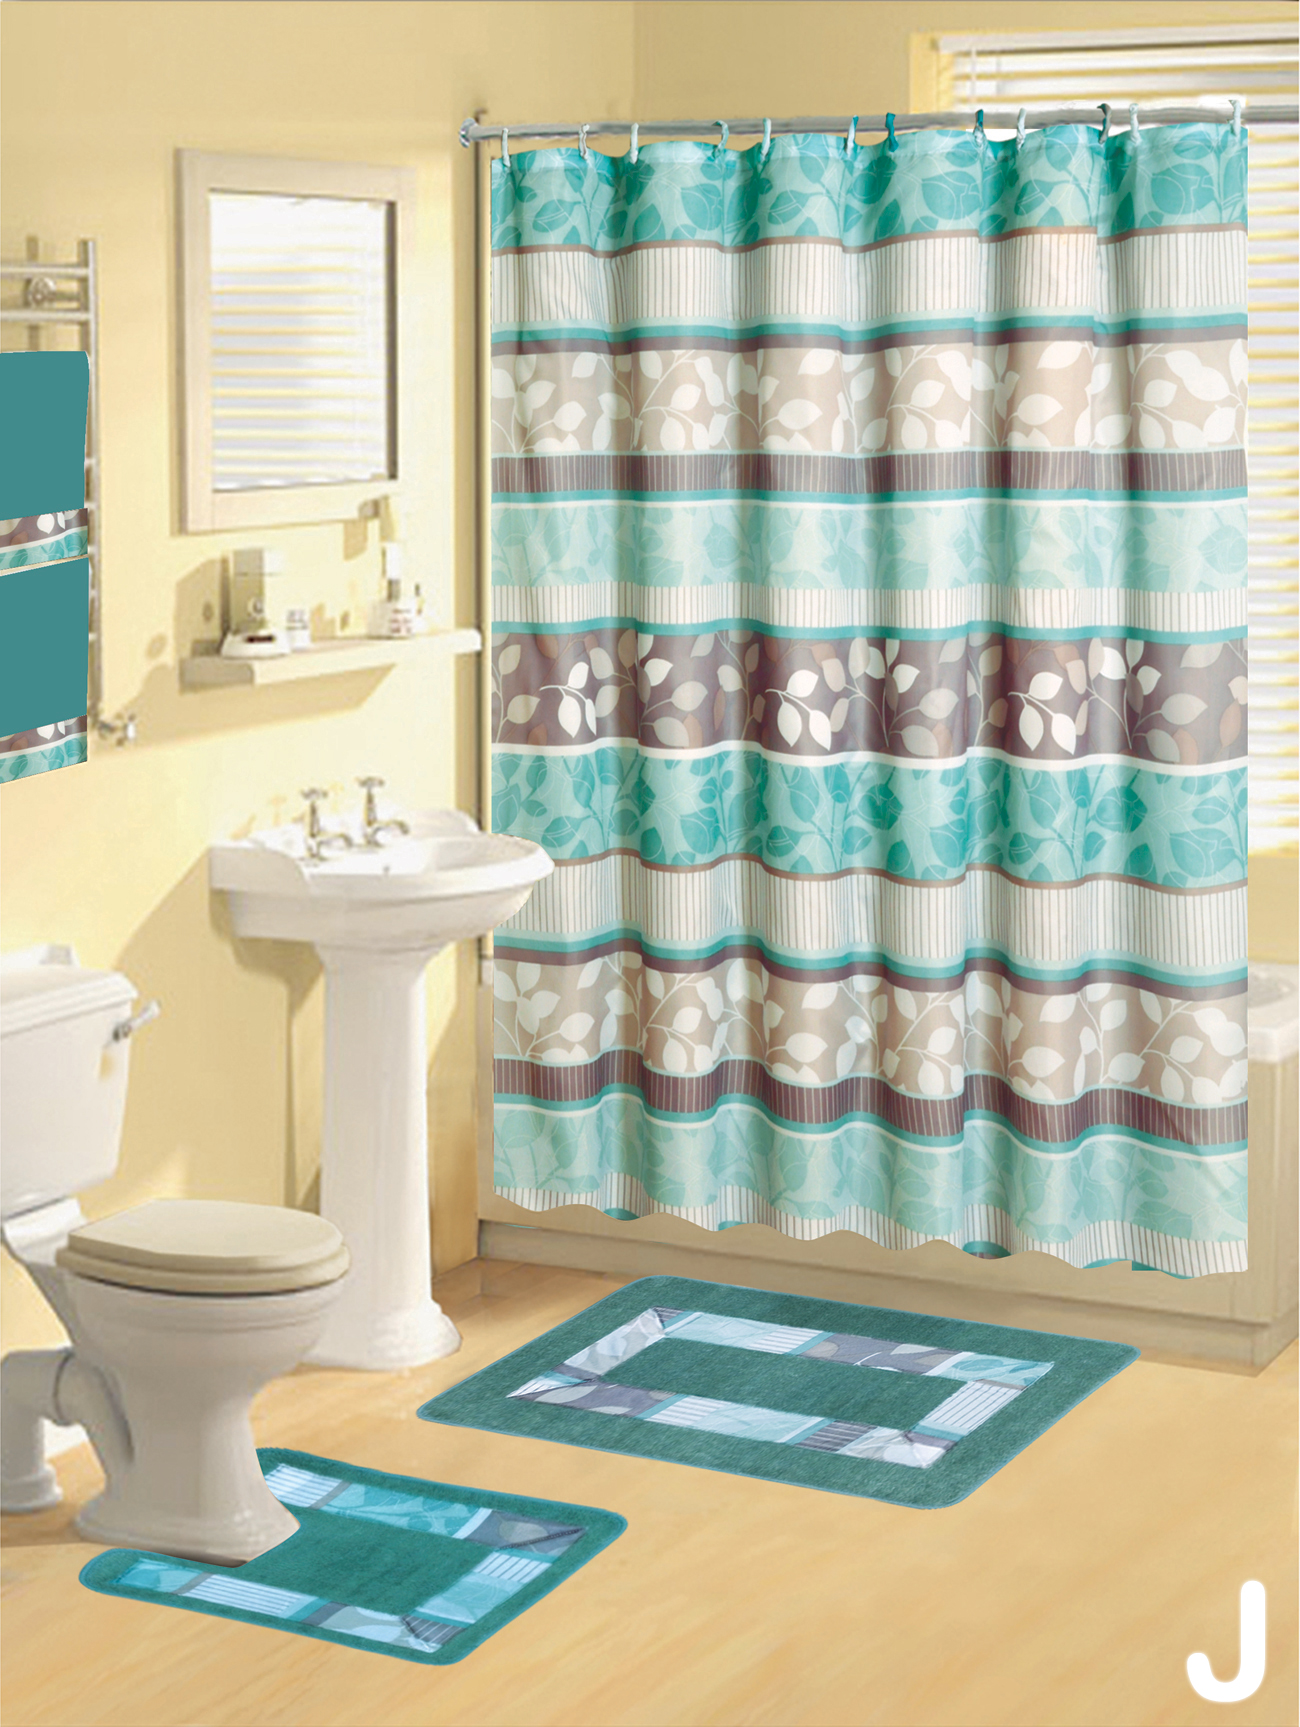 Shower Curtains 17 Pcs Set Contemporary Bath Mat